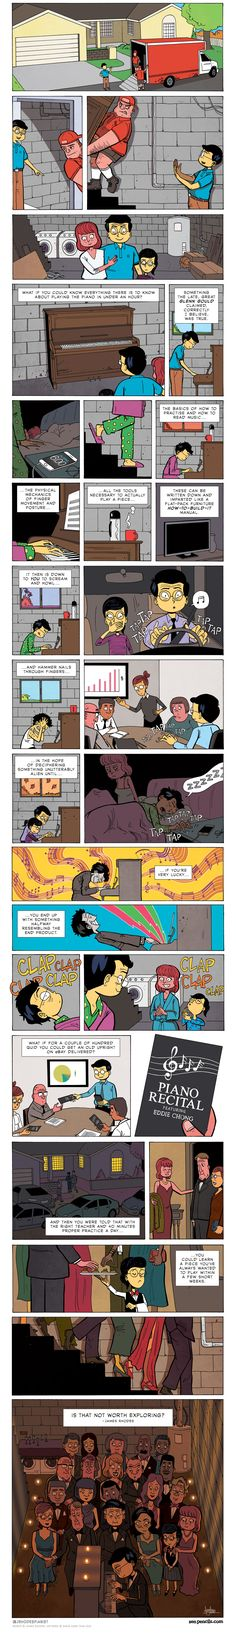 ZEN PENCILS » 180. JAMES RHODES: Is that not worth exploring? Part 2